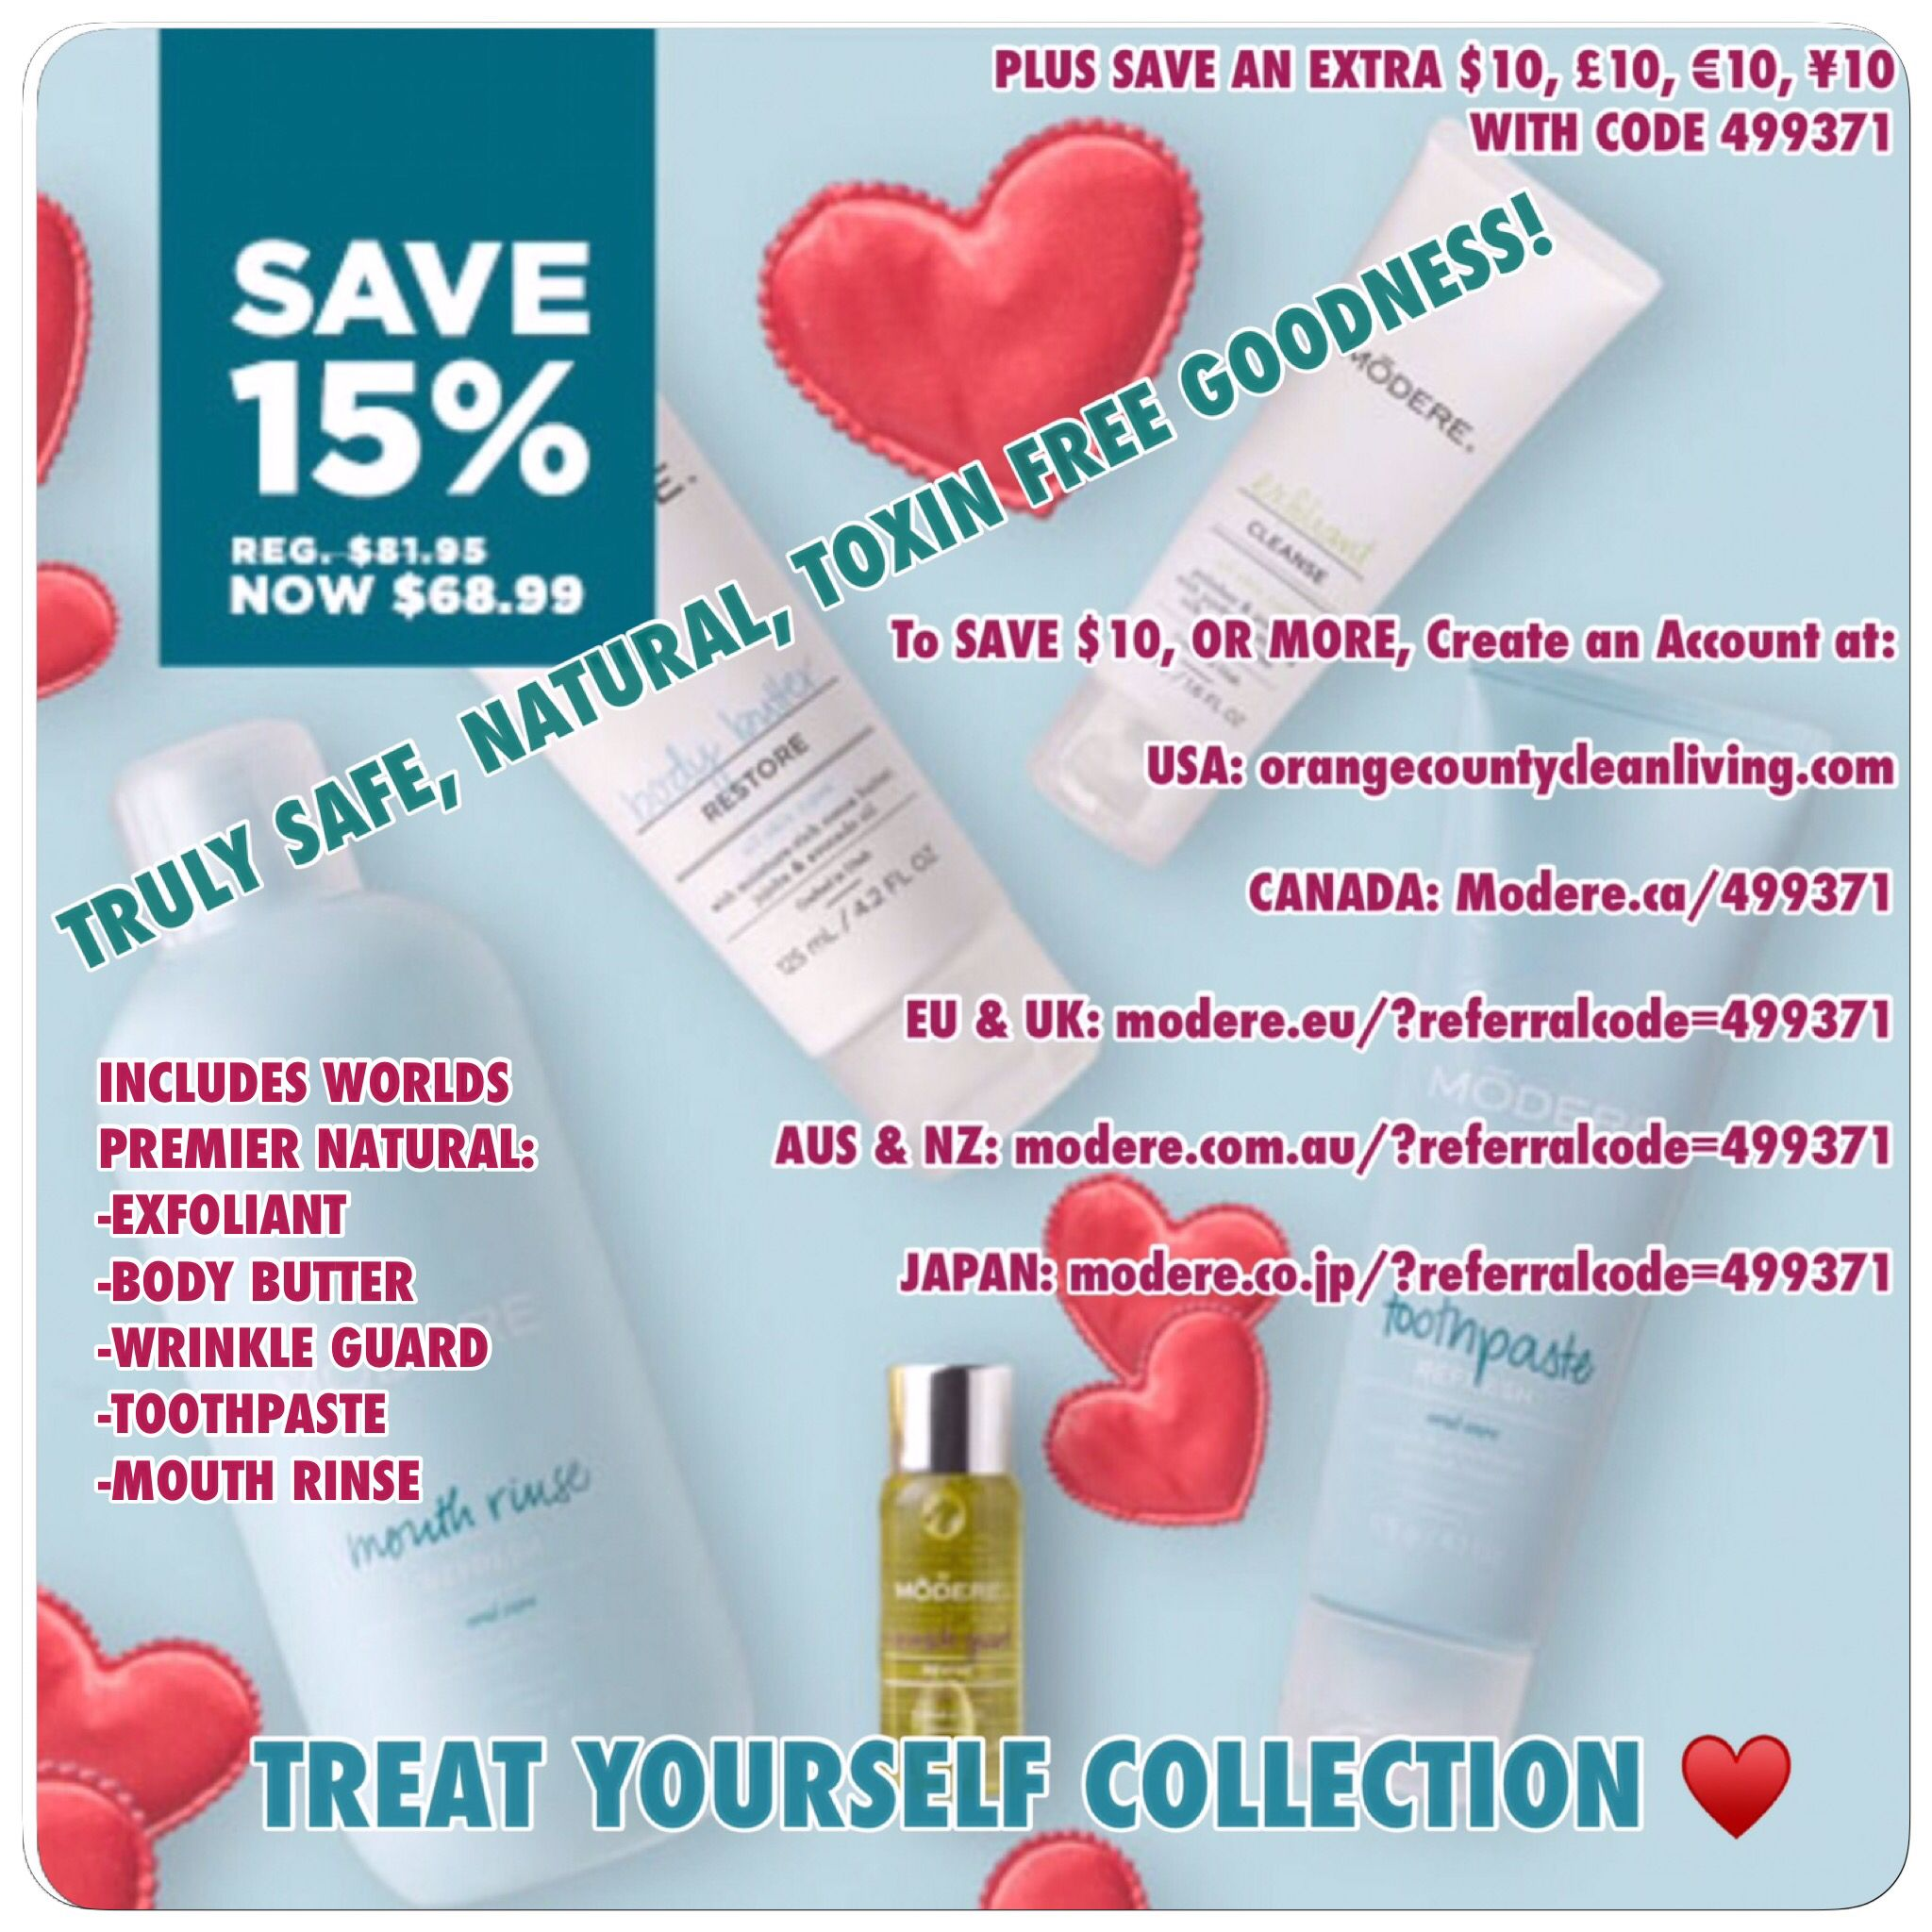 Save 15 & Extra 10 Natural Body Care, The Treat